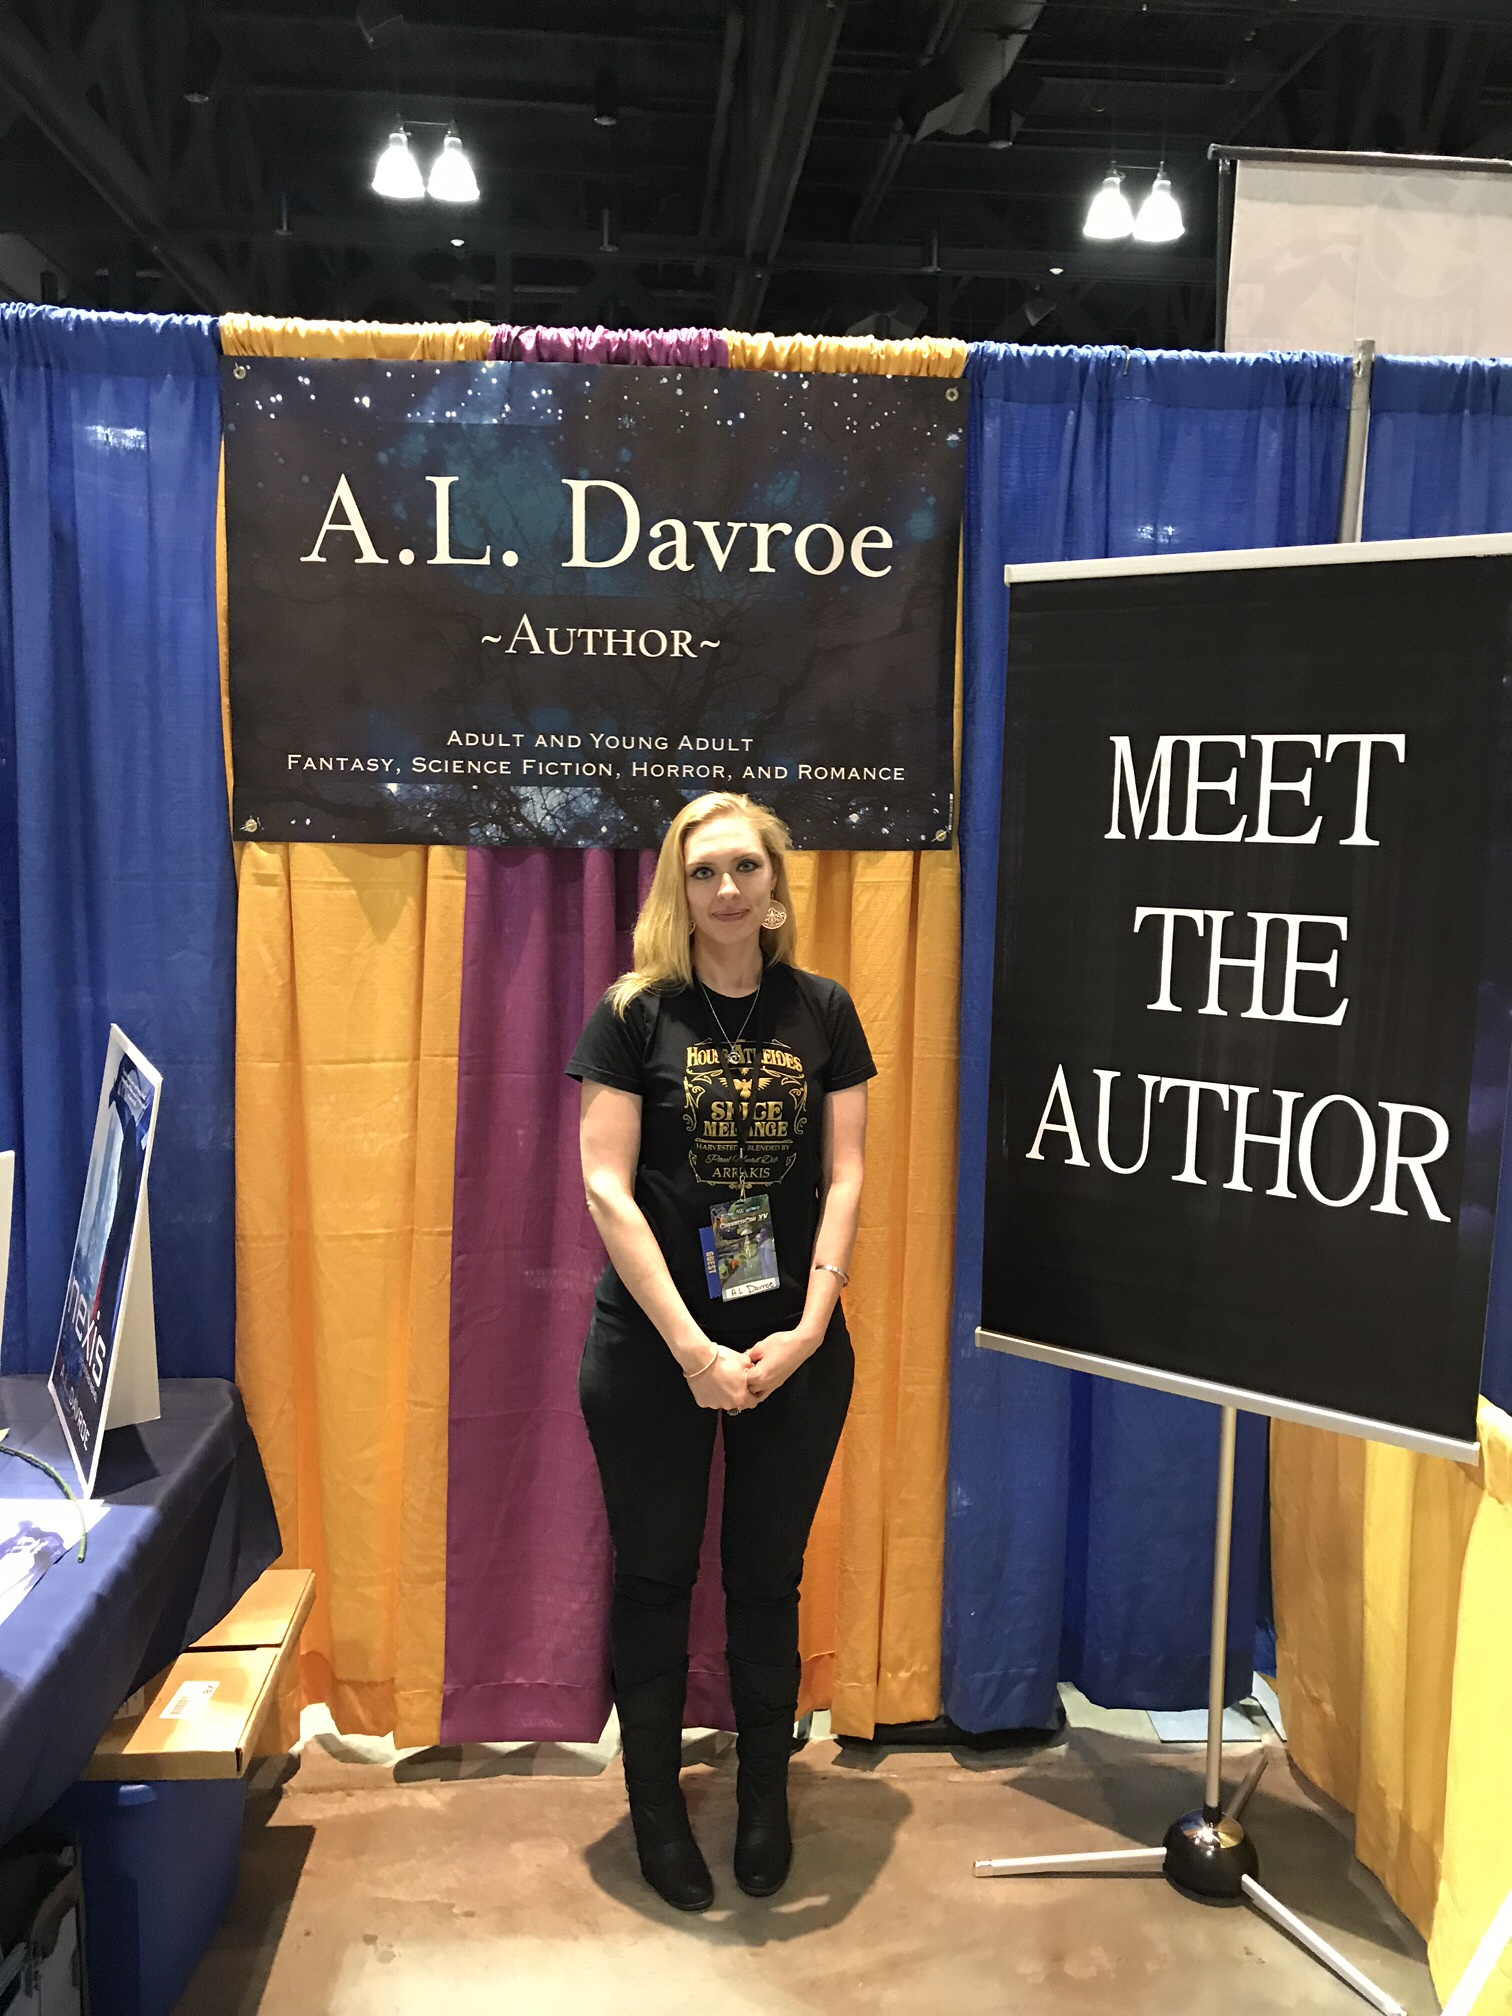 Author A.L. Davroe.